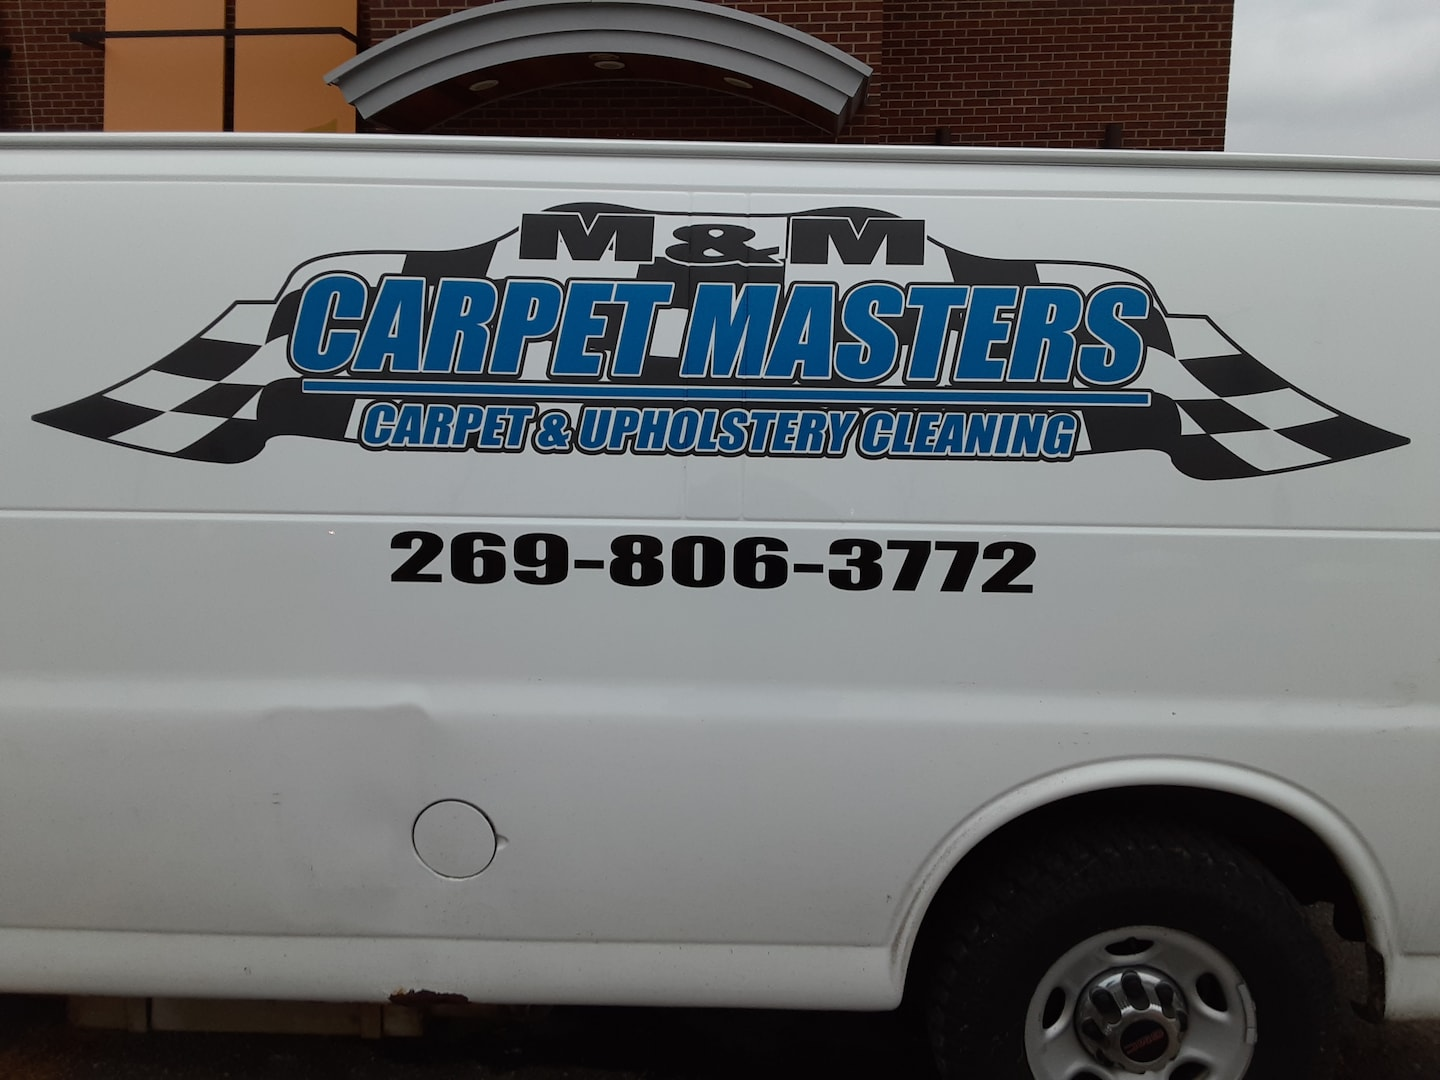 M&M Carpet Masters